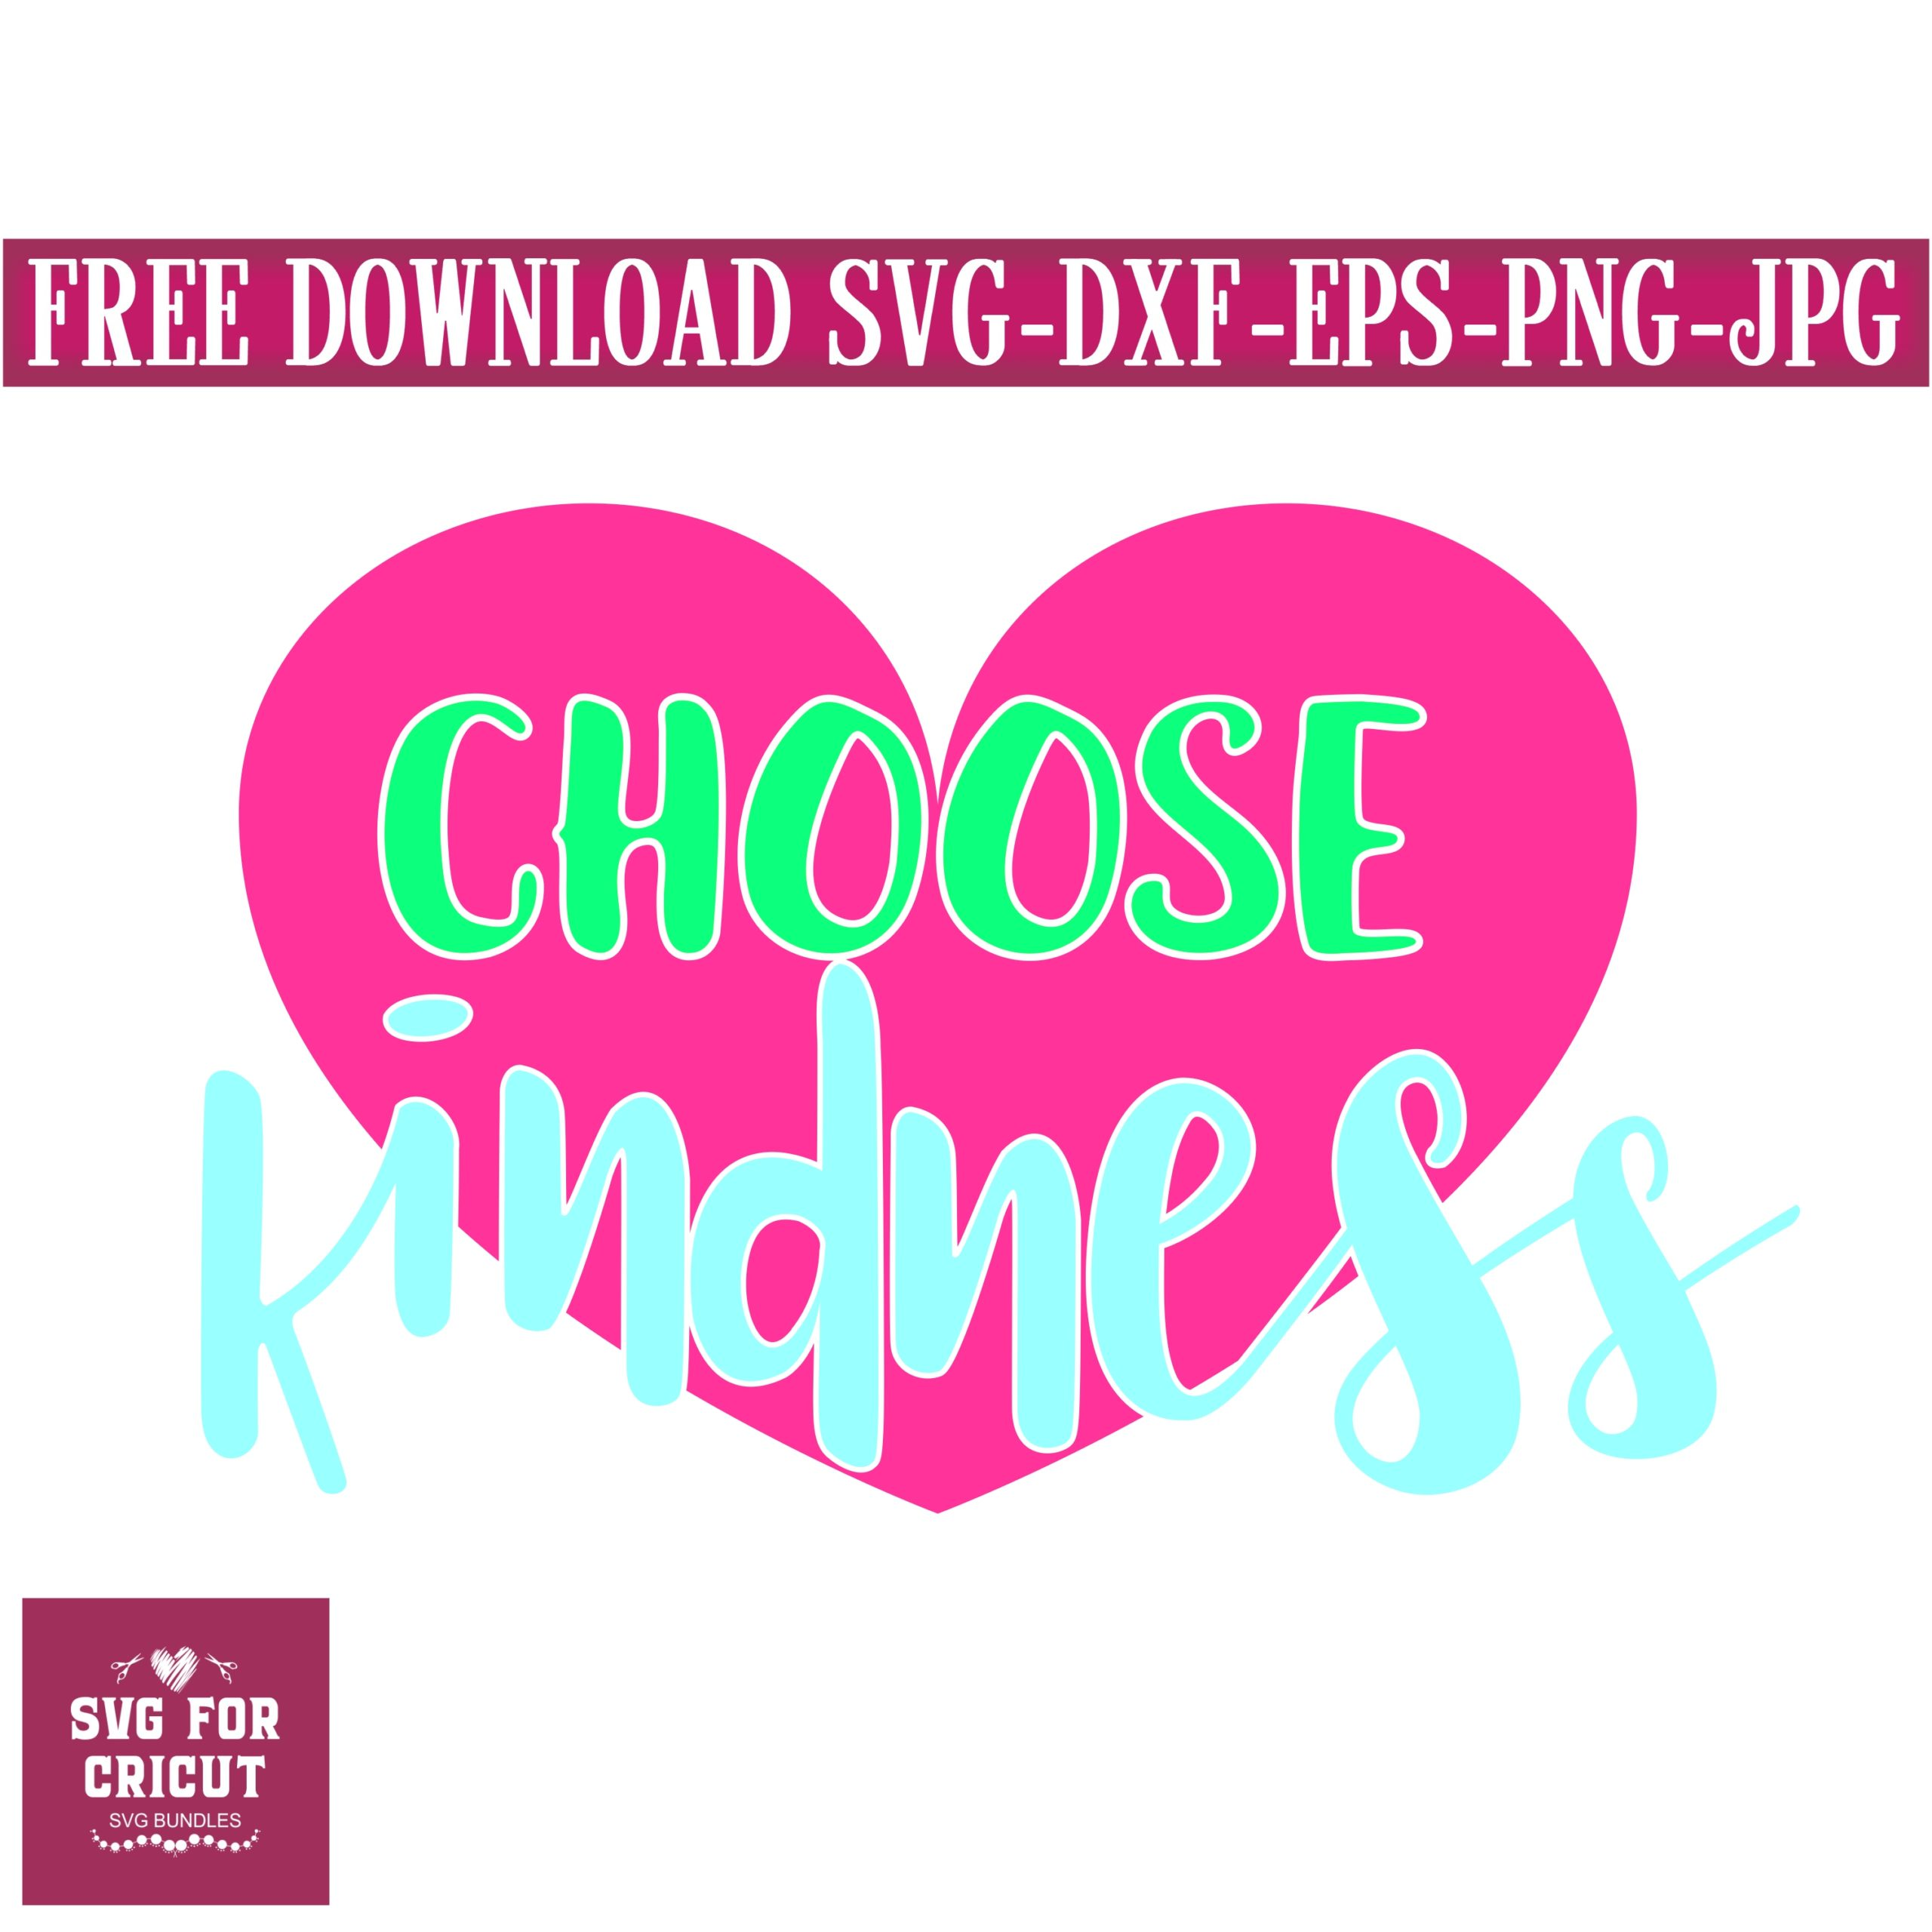 Choose-kindness-svg